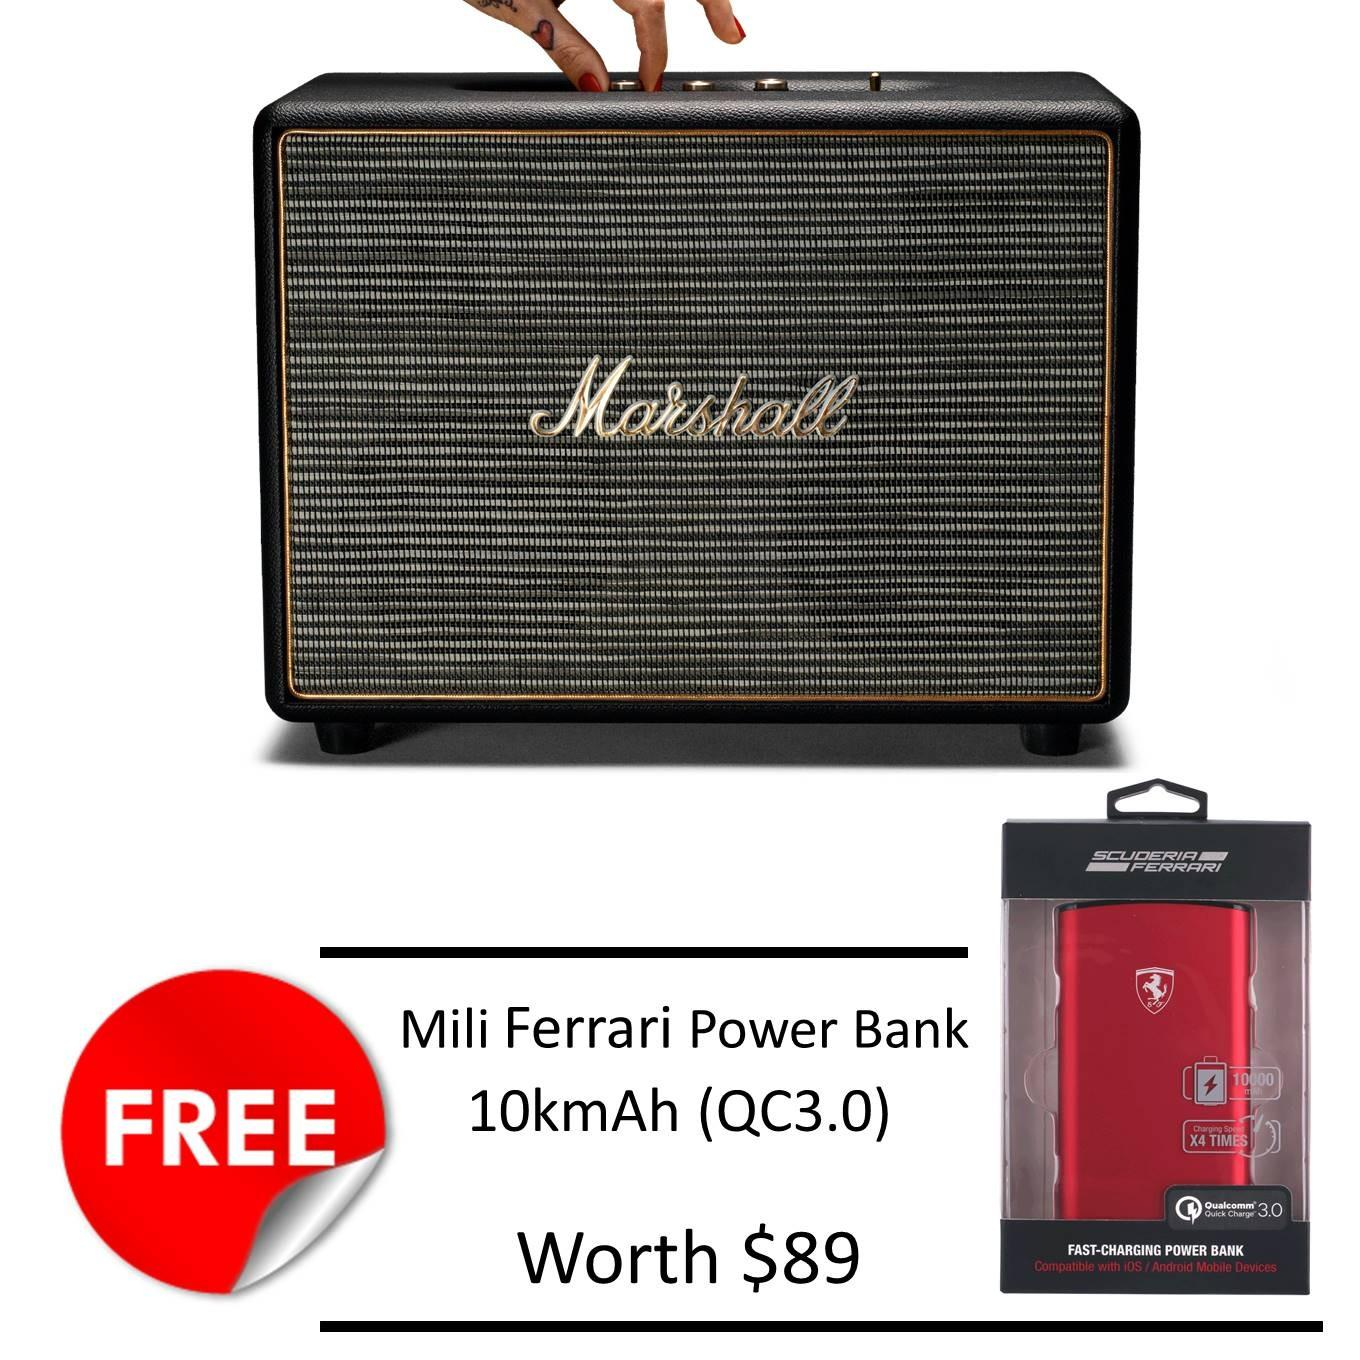 Where To Shop For Marshall Woburn Speaker Black Free Mili Ferrari 10Kmah Powerbank